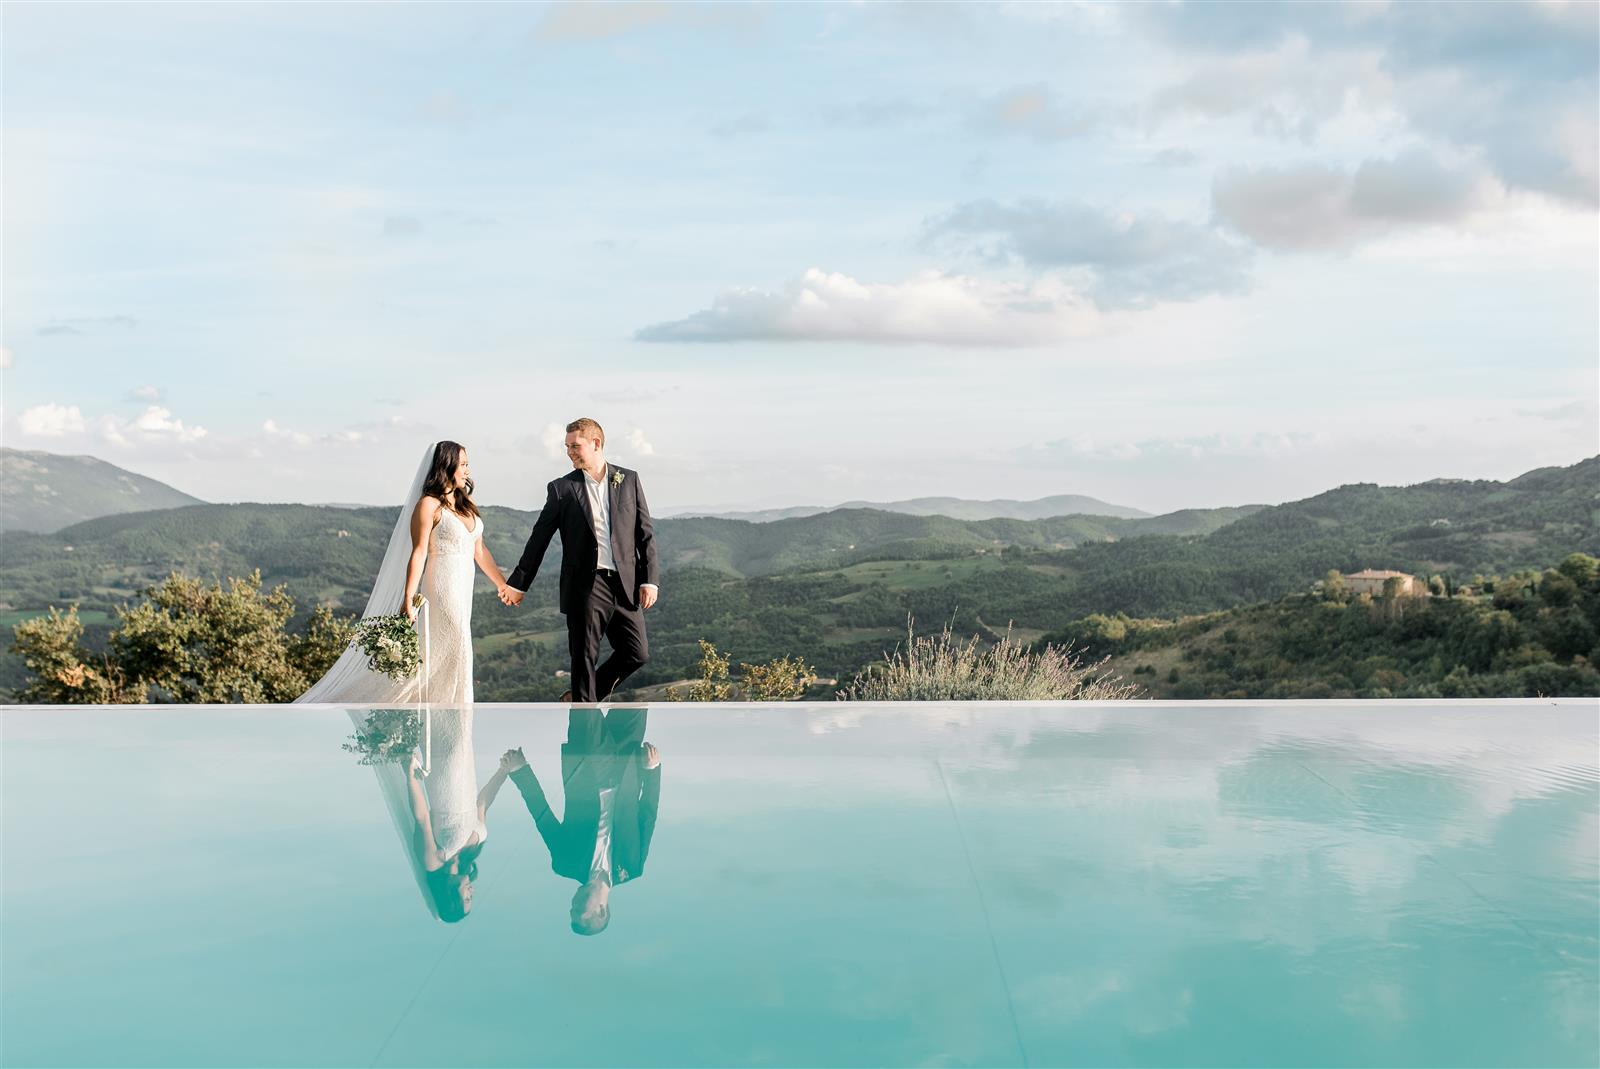 wedding planner in italy wedding photographer in italy wedding in tuscany wedding venue in italy wedding in italy 19